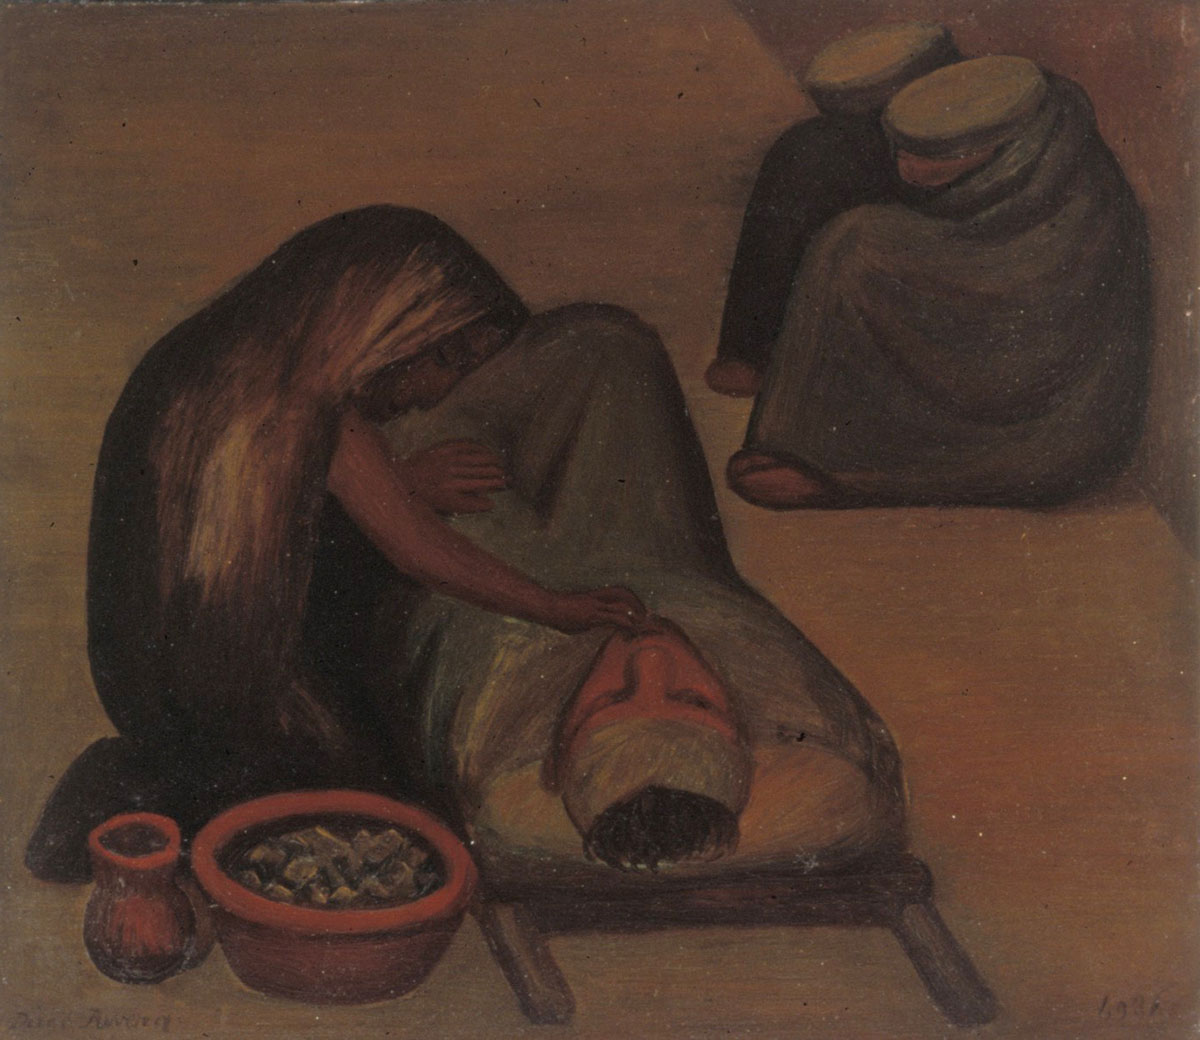 Diego Rivera, Wounded Soldier, 1931. Oil on tin. Collection of DePaul Art Museum, Art Acquisition Endowment, in Honor of DePaul's Centennial Anniversary, 1999.1.